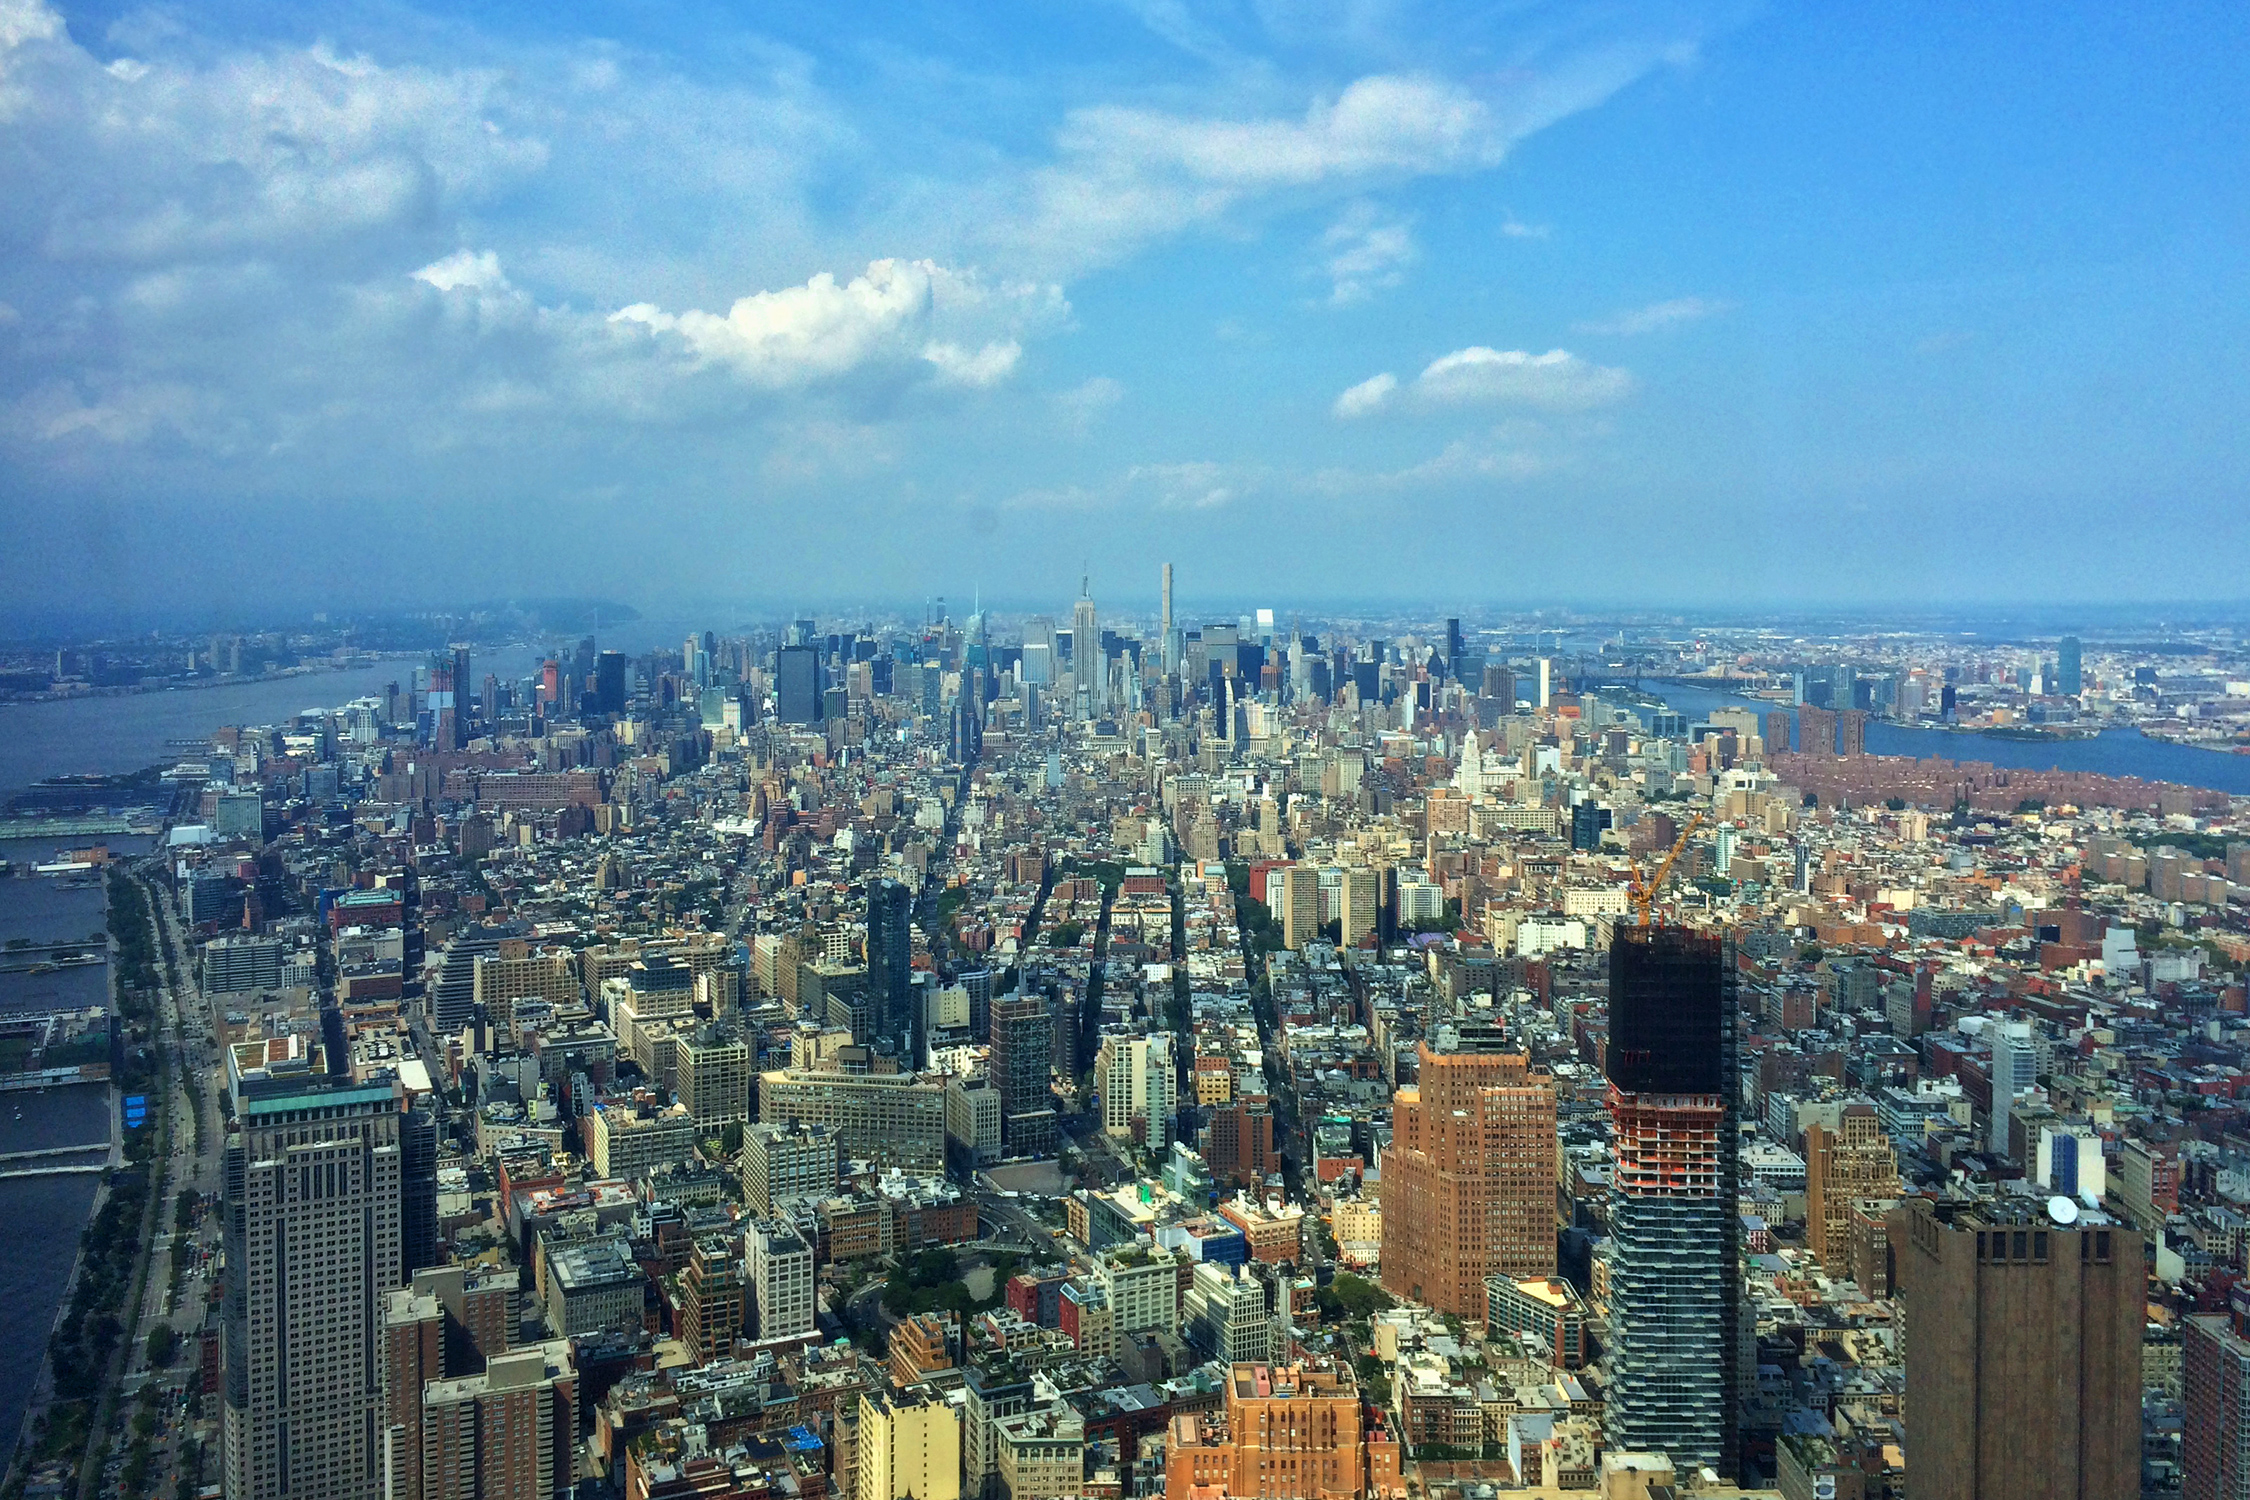 New York City, from the 100th floor of One World Trade Center